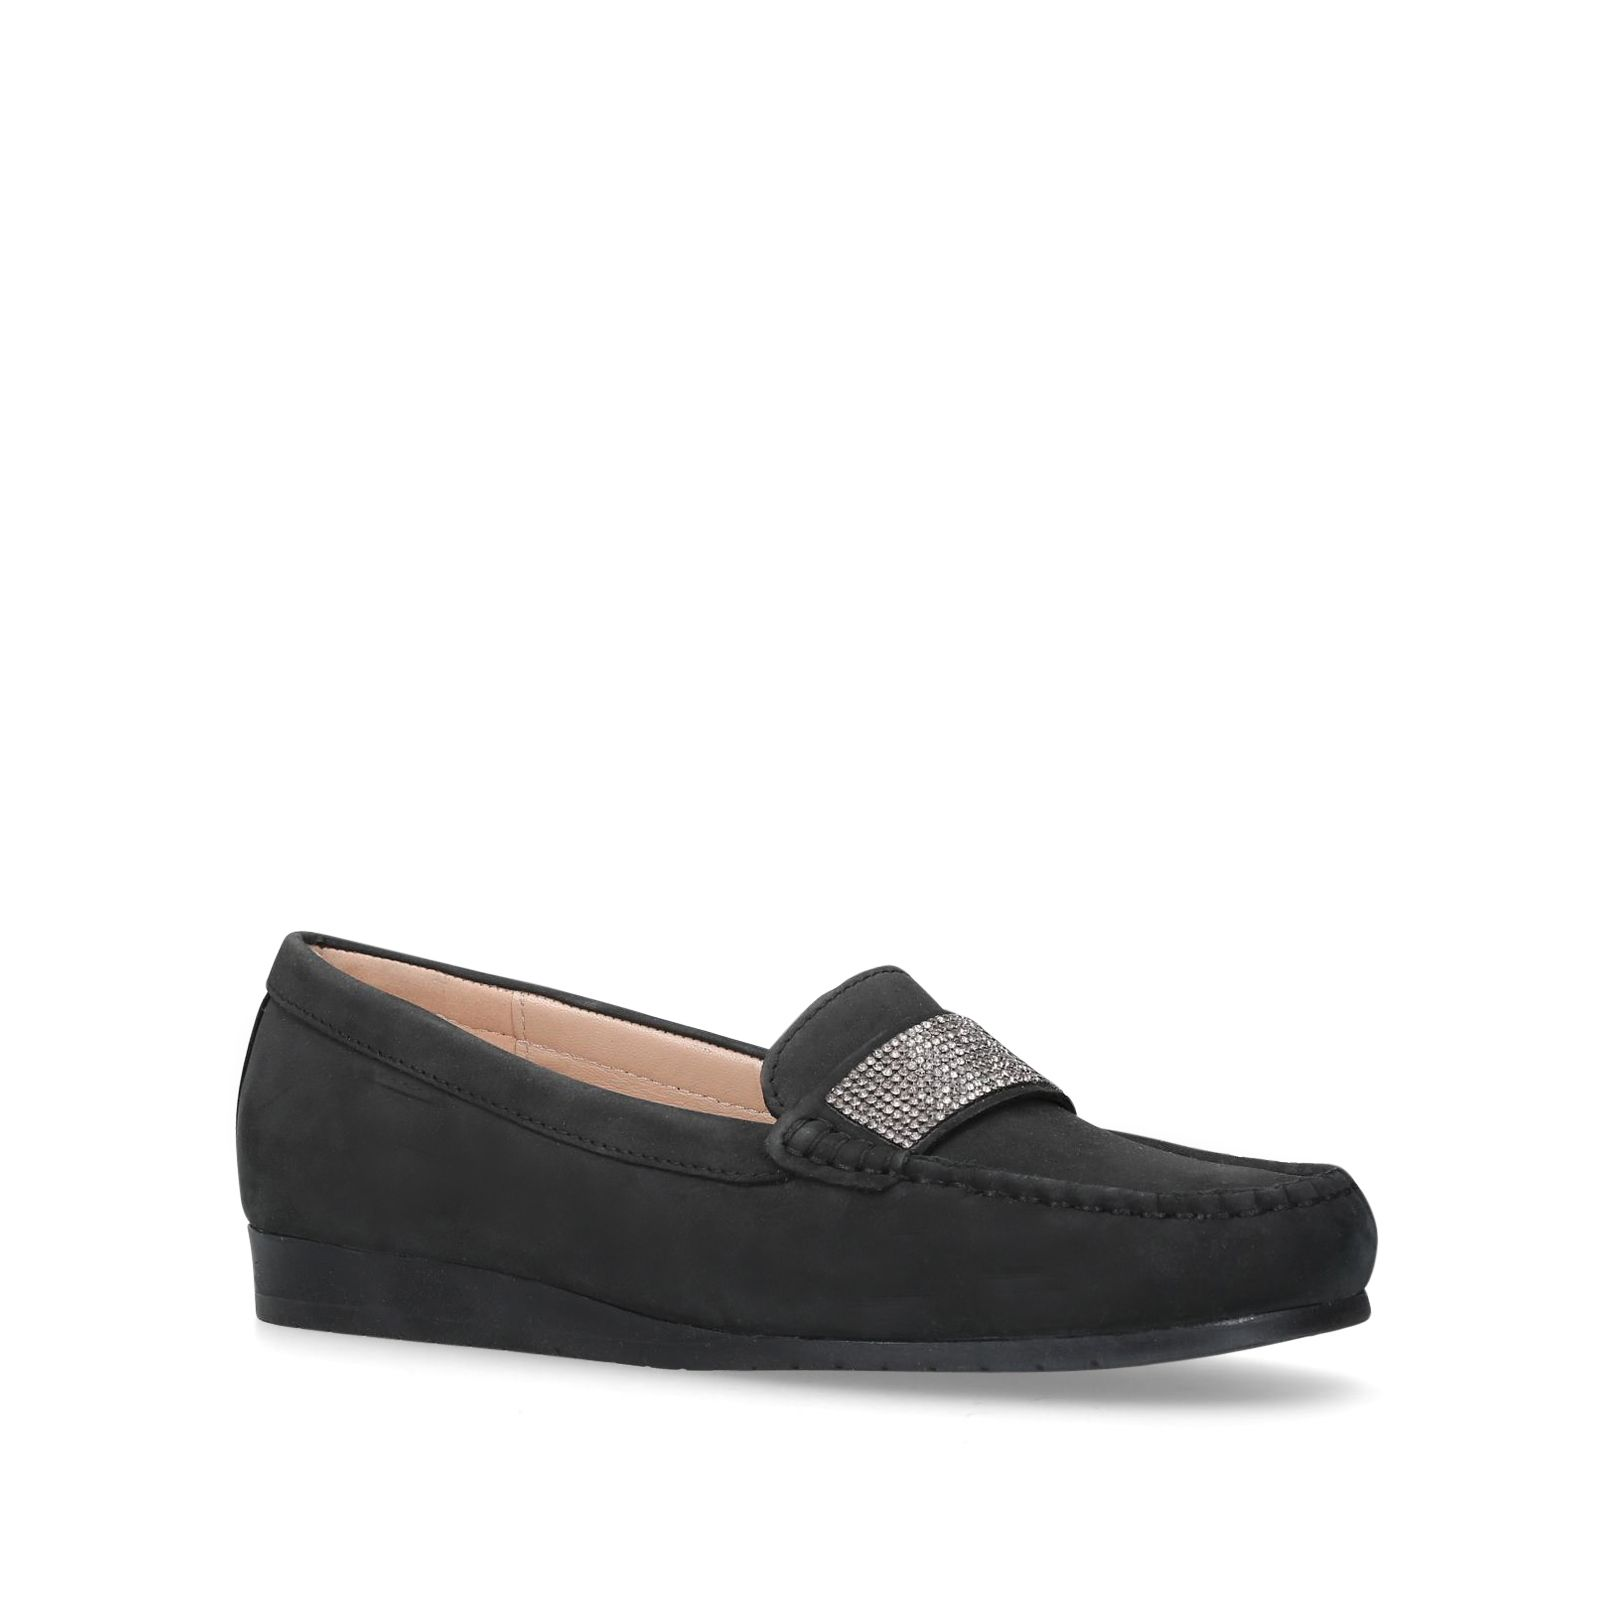 Carvela Comfort Cole Loafers, Black